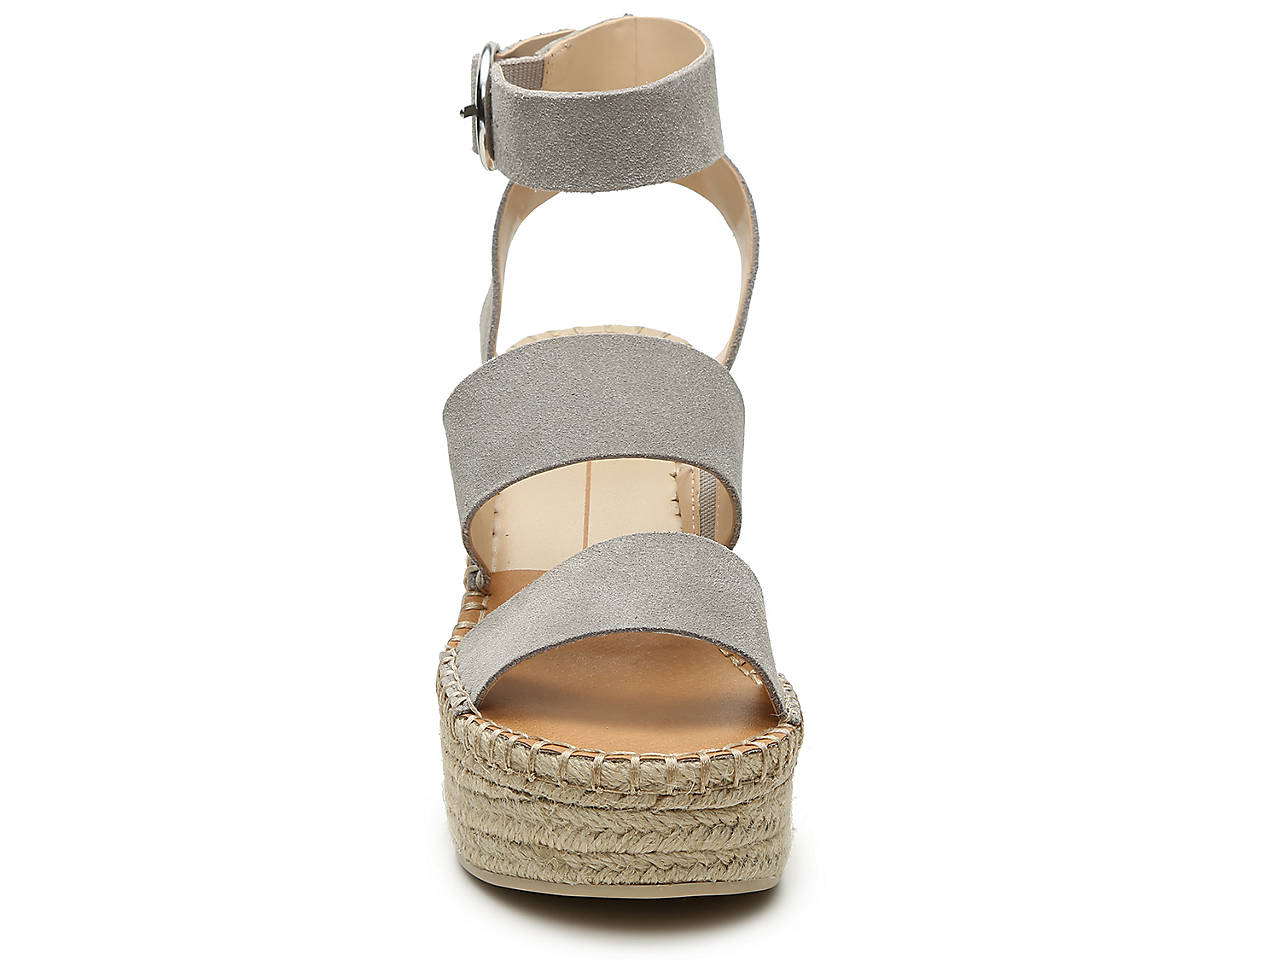 d567d91b95ad Dolce Vita Shae Espadrille Wedge Sandal Women s Shoes